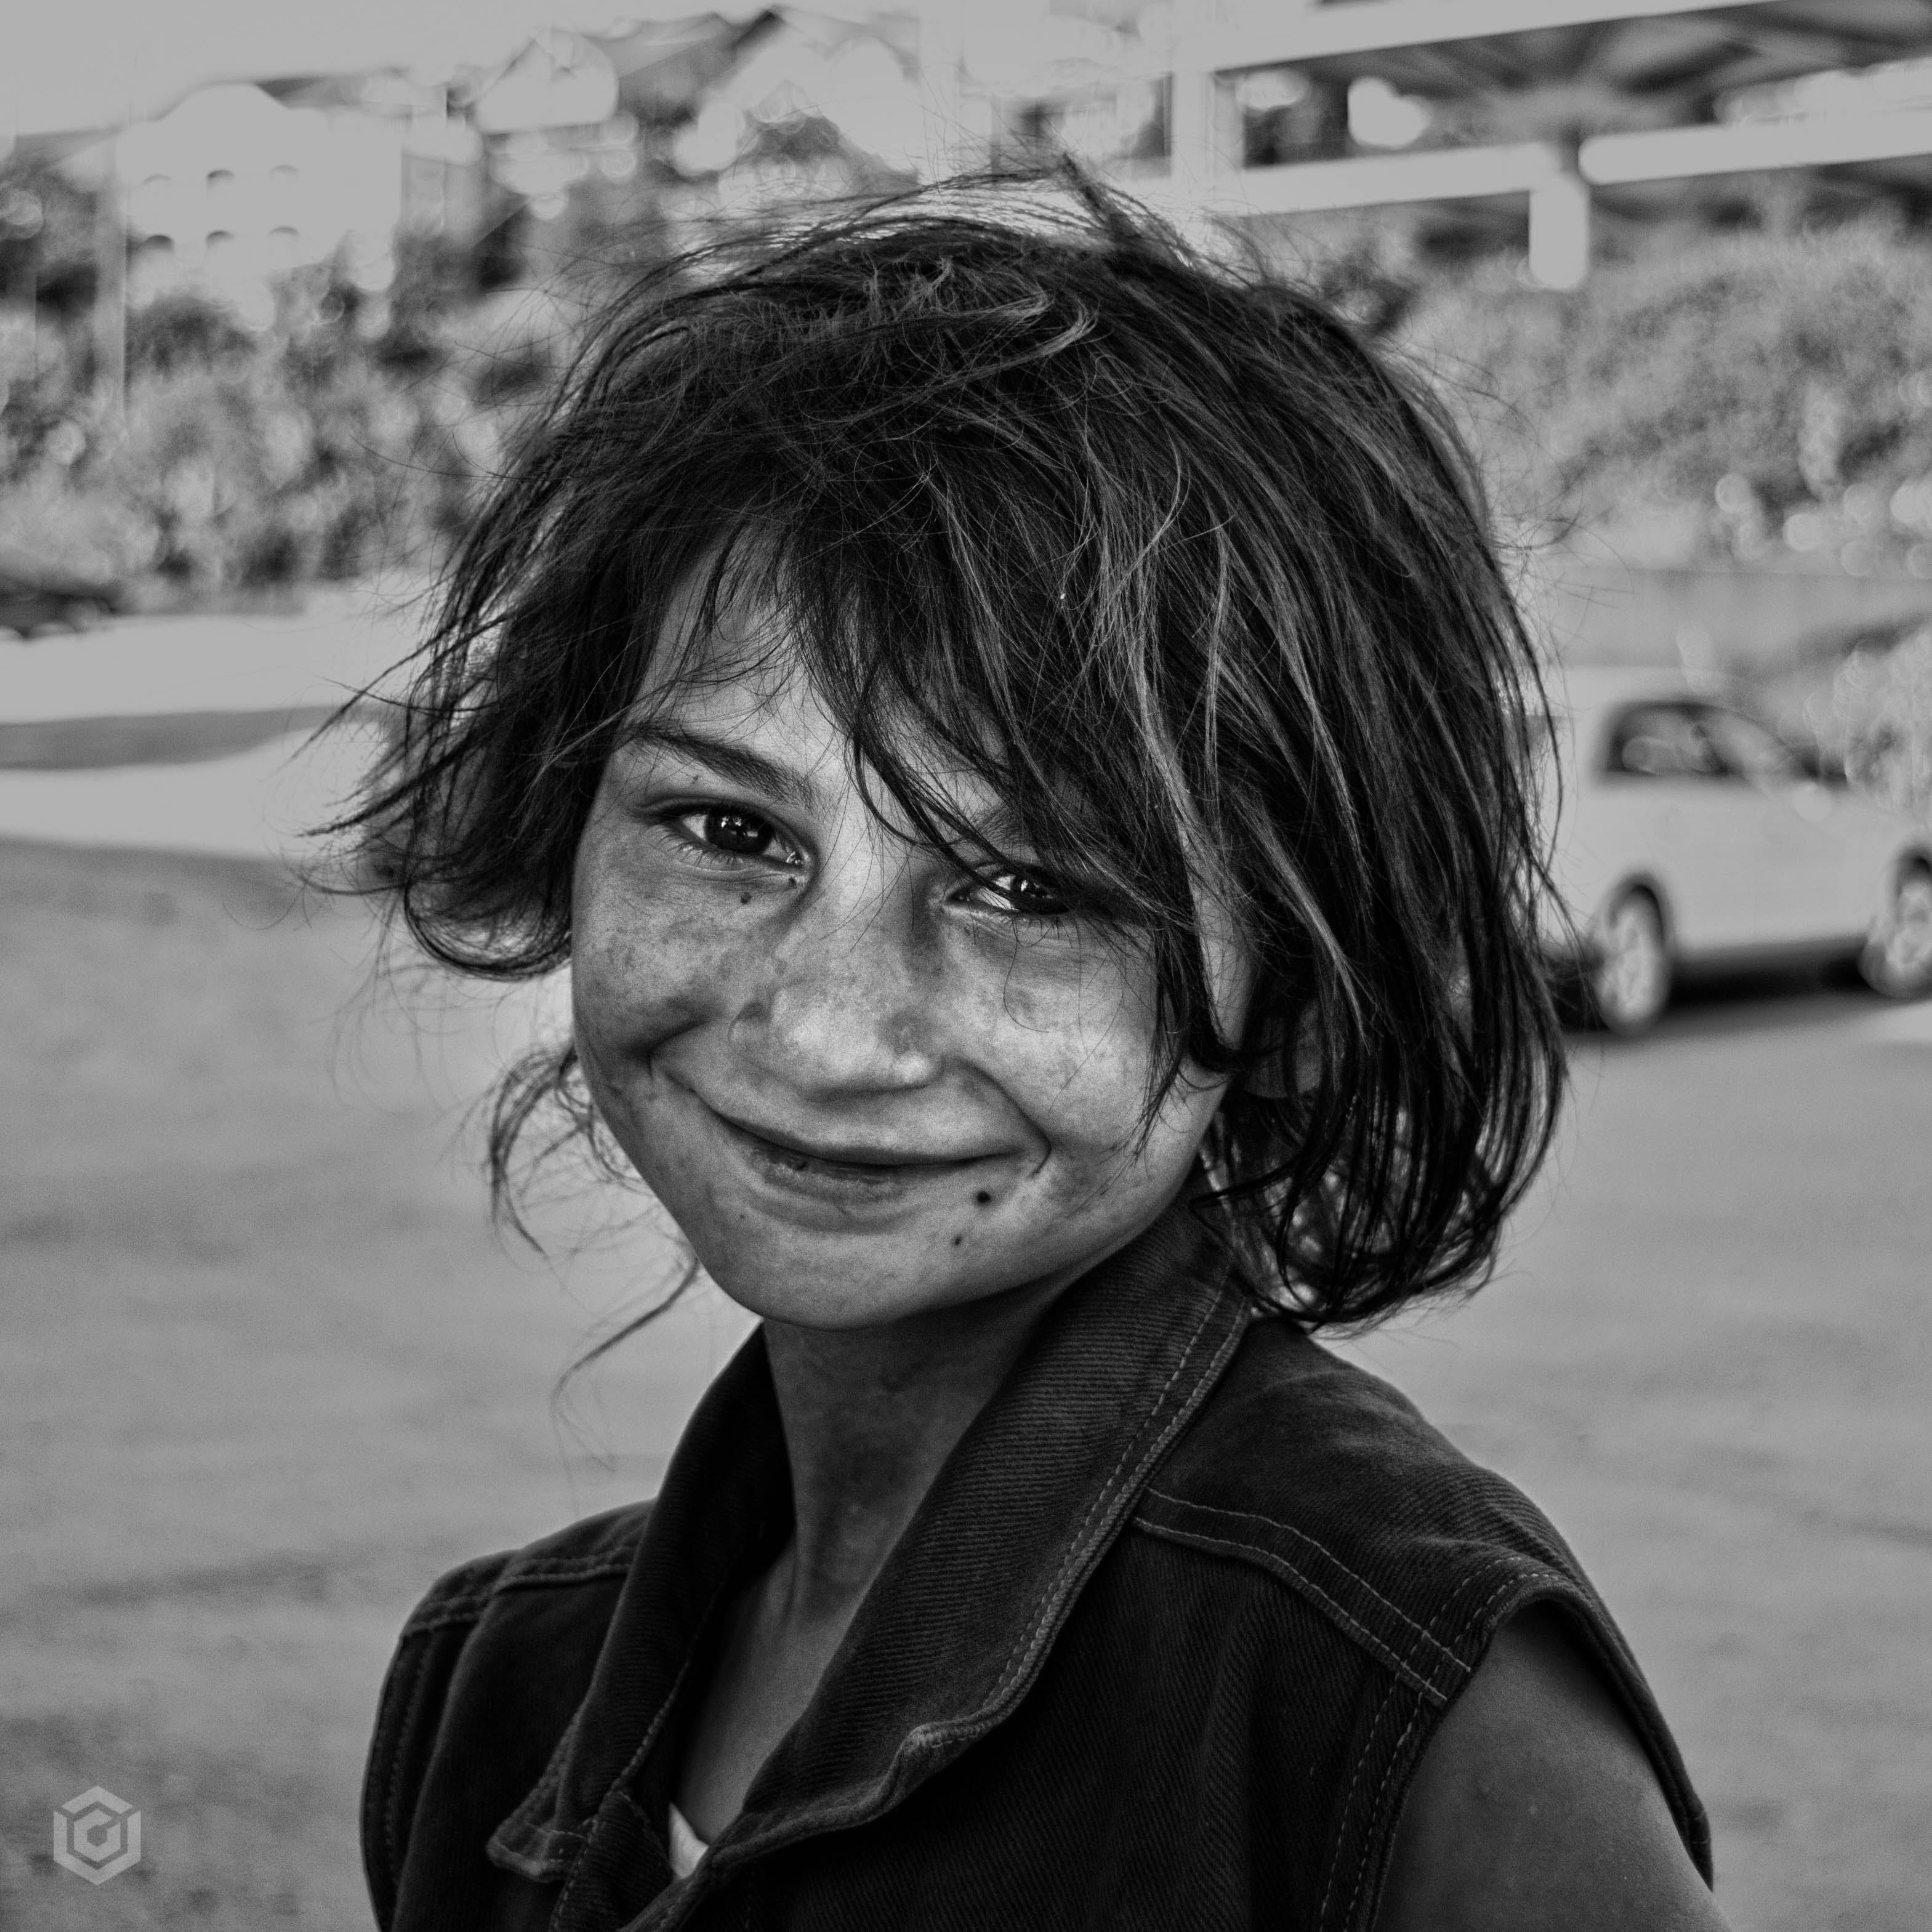 Free stock photo of black and white, gipsy girl, girl, smile